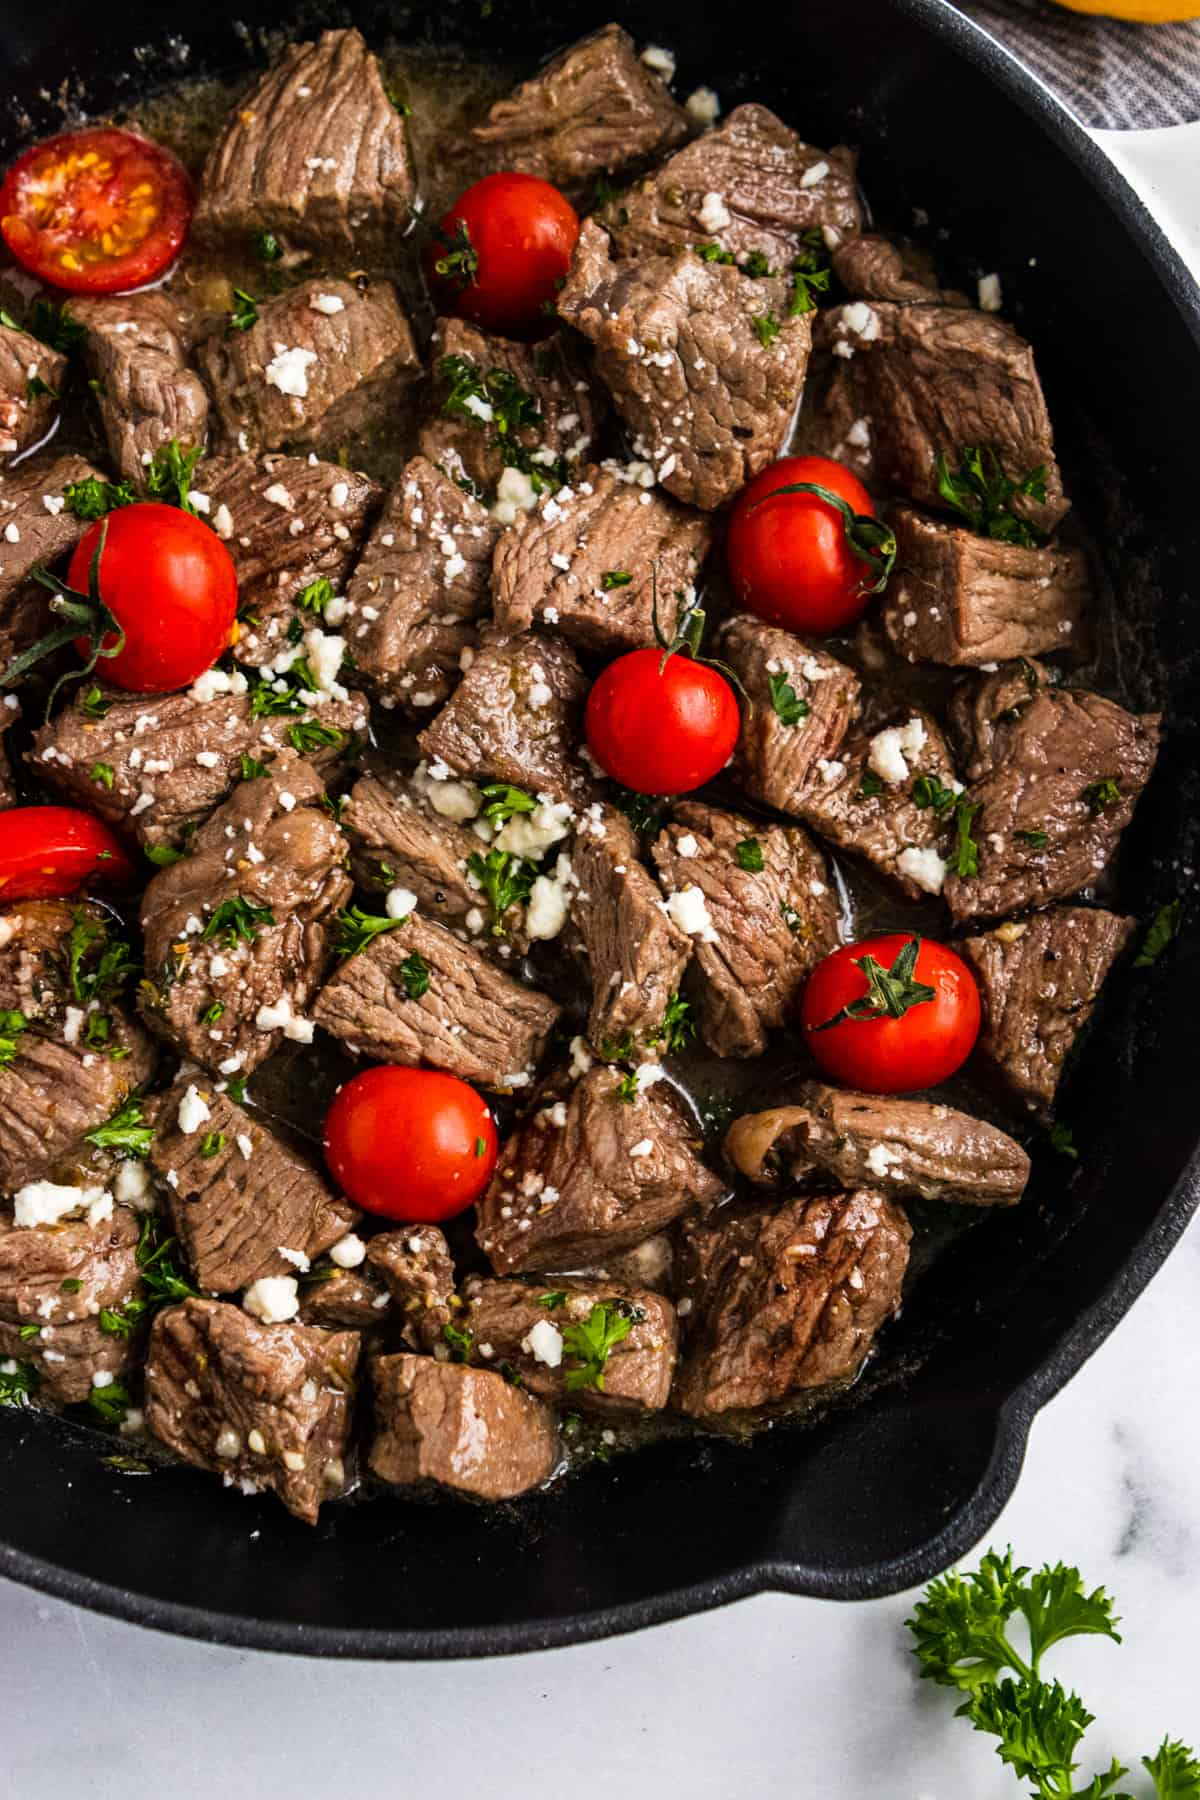 Steak bites in skillet with fresh tomatoes, feta and parsley.